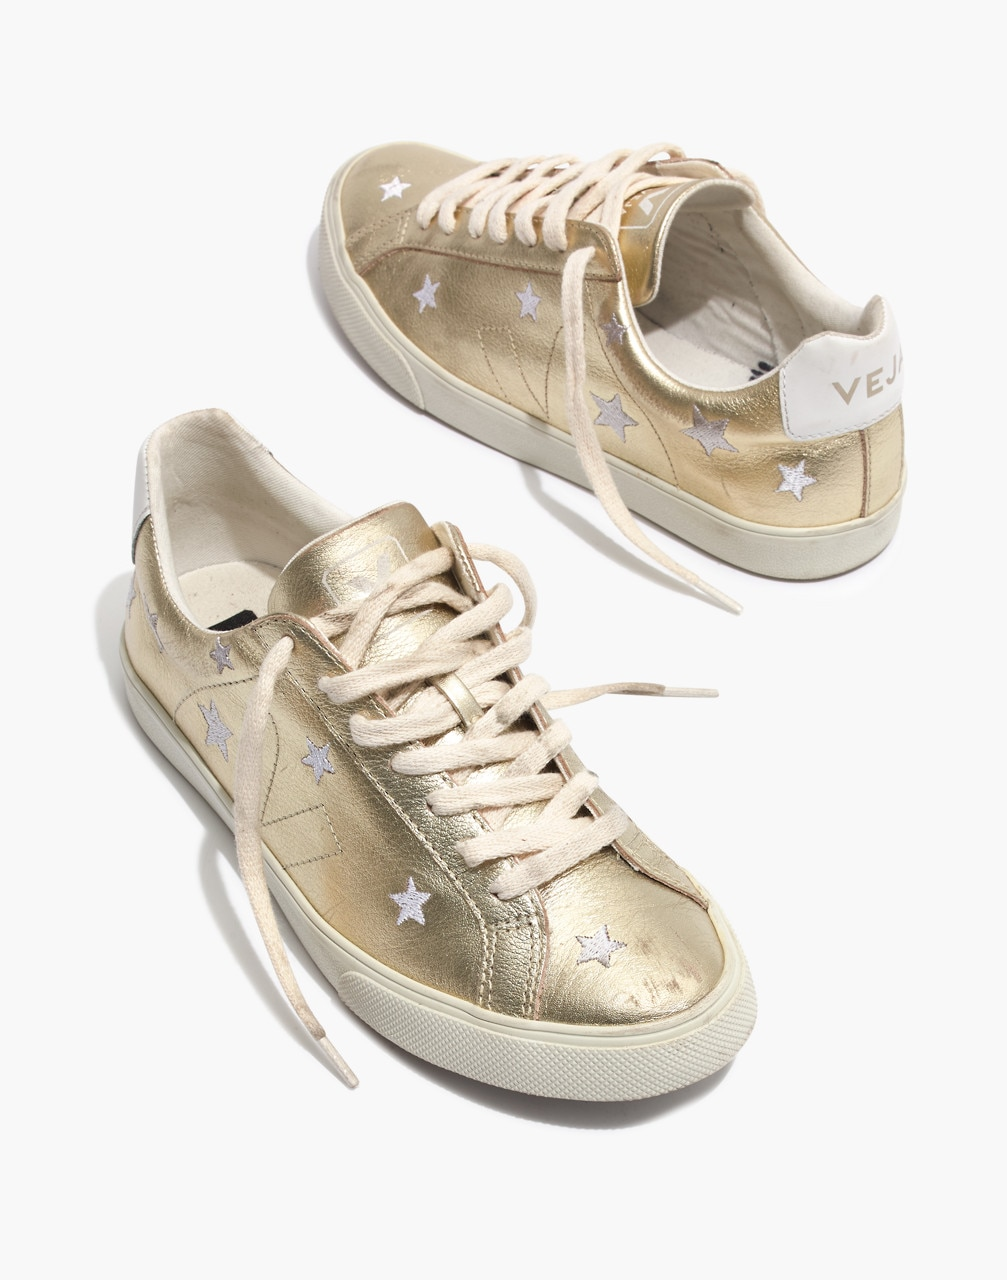 Madewell x Veja Esplar Low Sneakers in Star-Embroidered Gold Leather